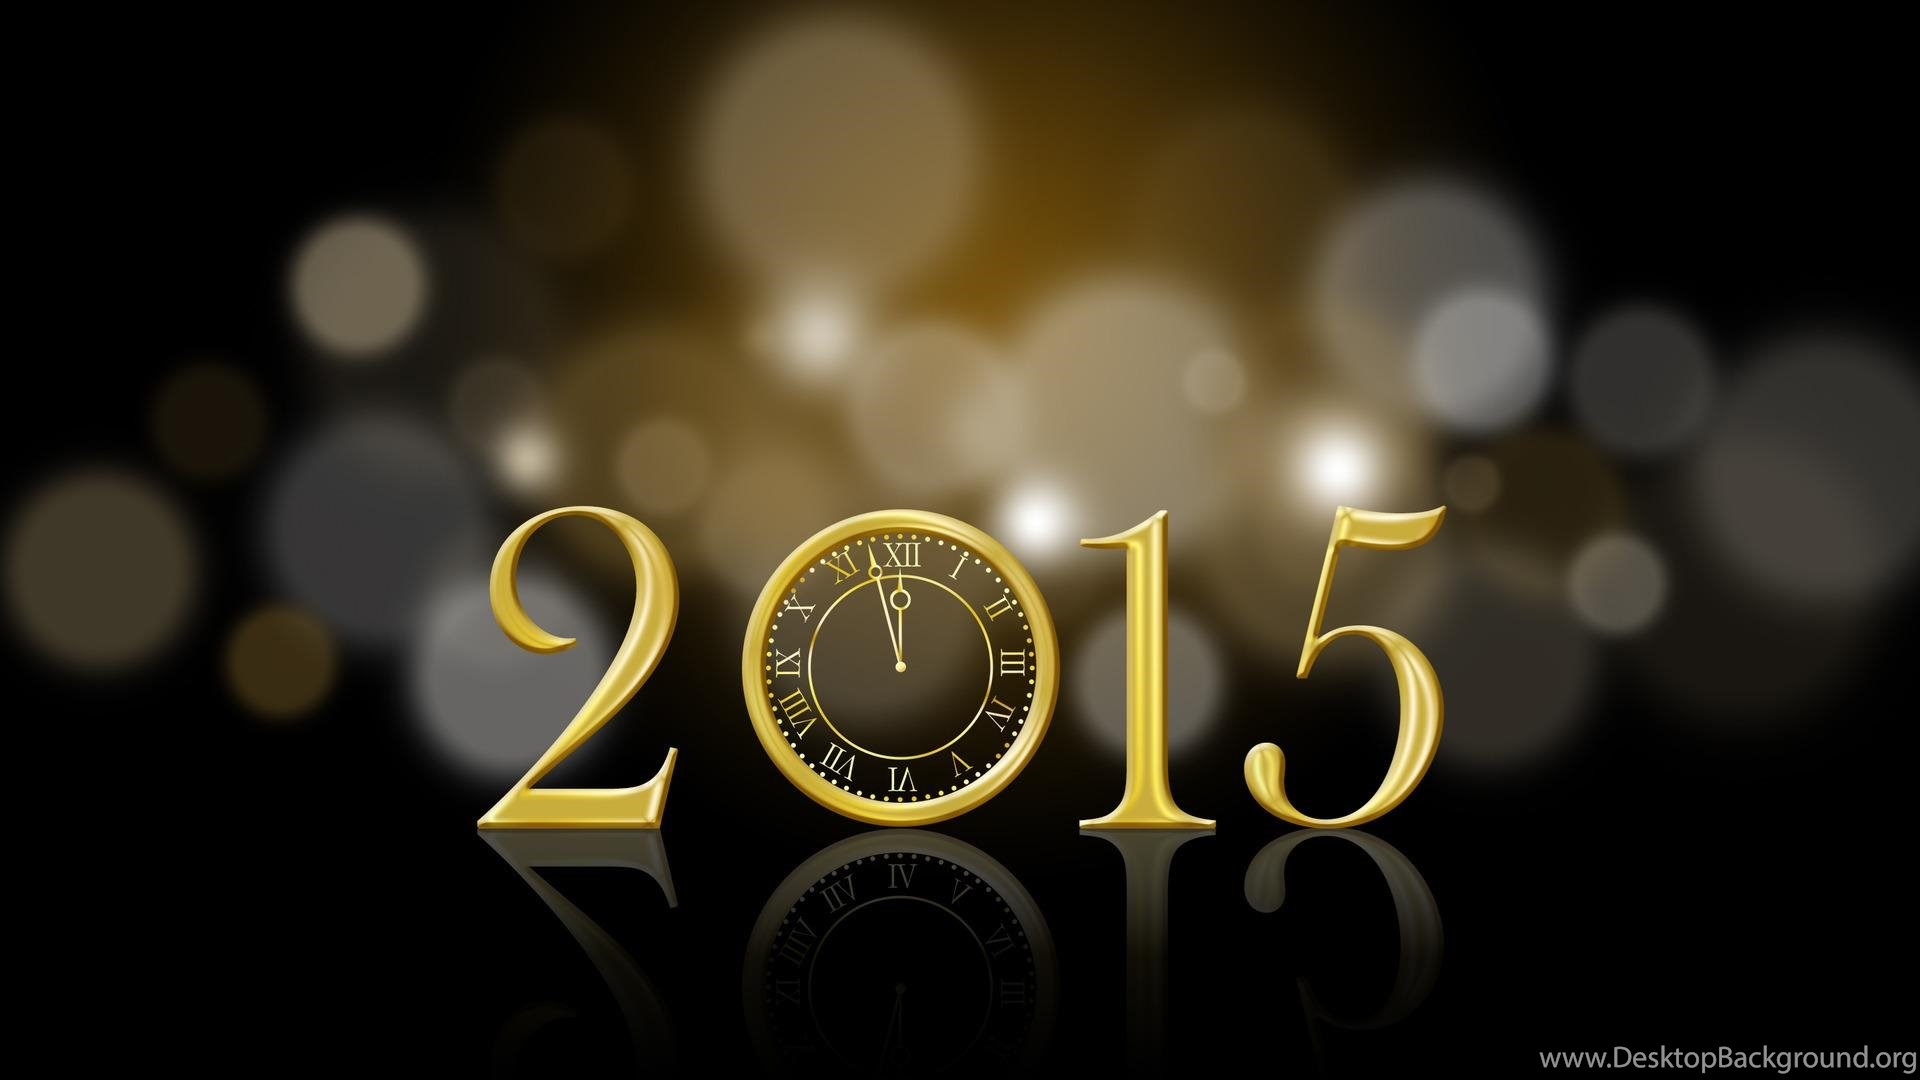 happy new year 2015 hd wallpapers 1920*1080p 3d free download